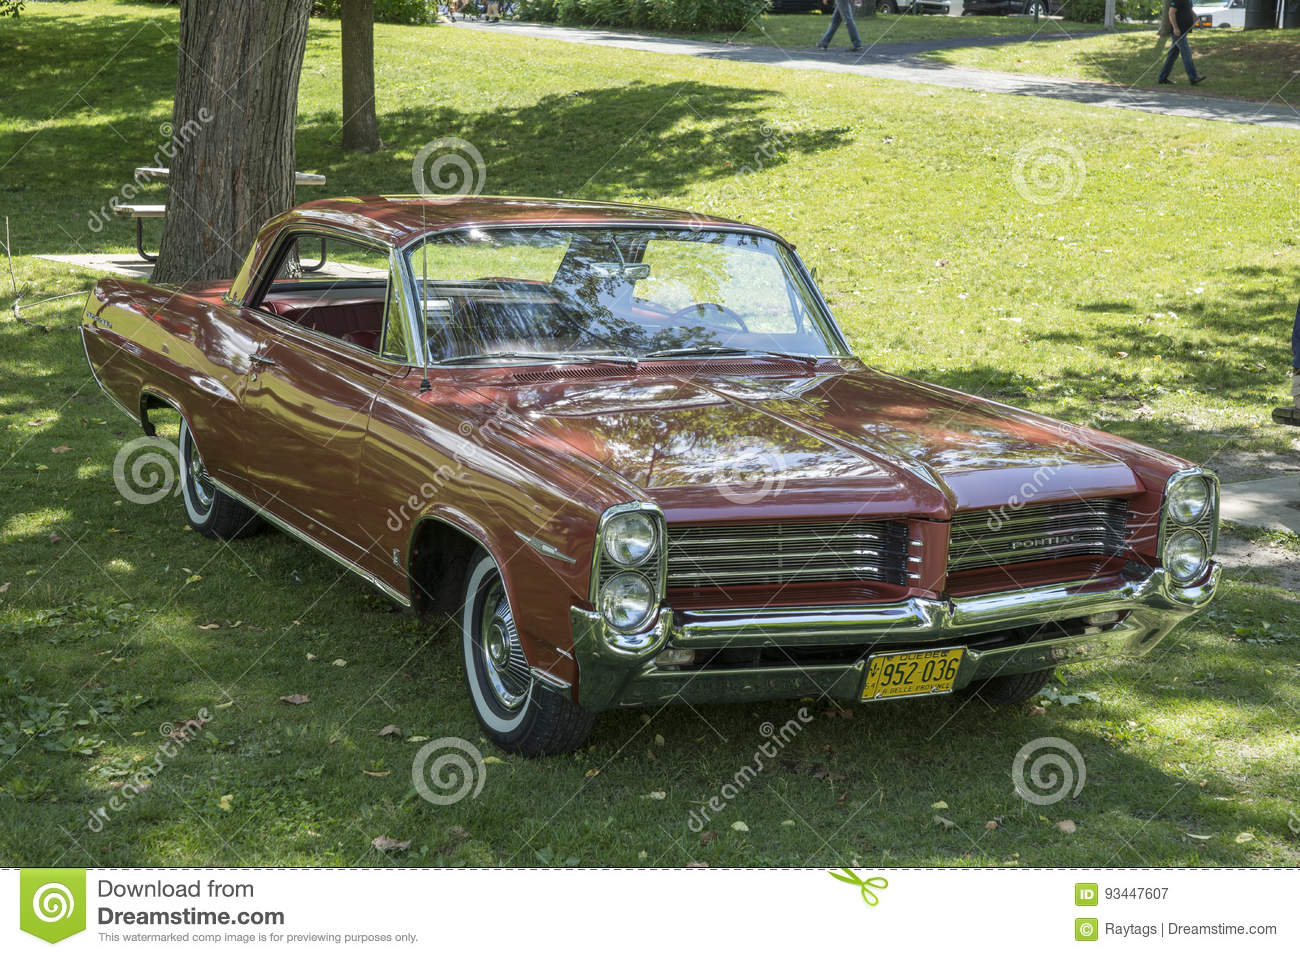 Pontiac Parisienne Editorial Photography Image Of Beautiful 93447607